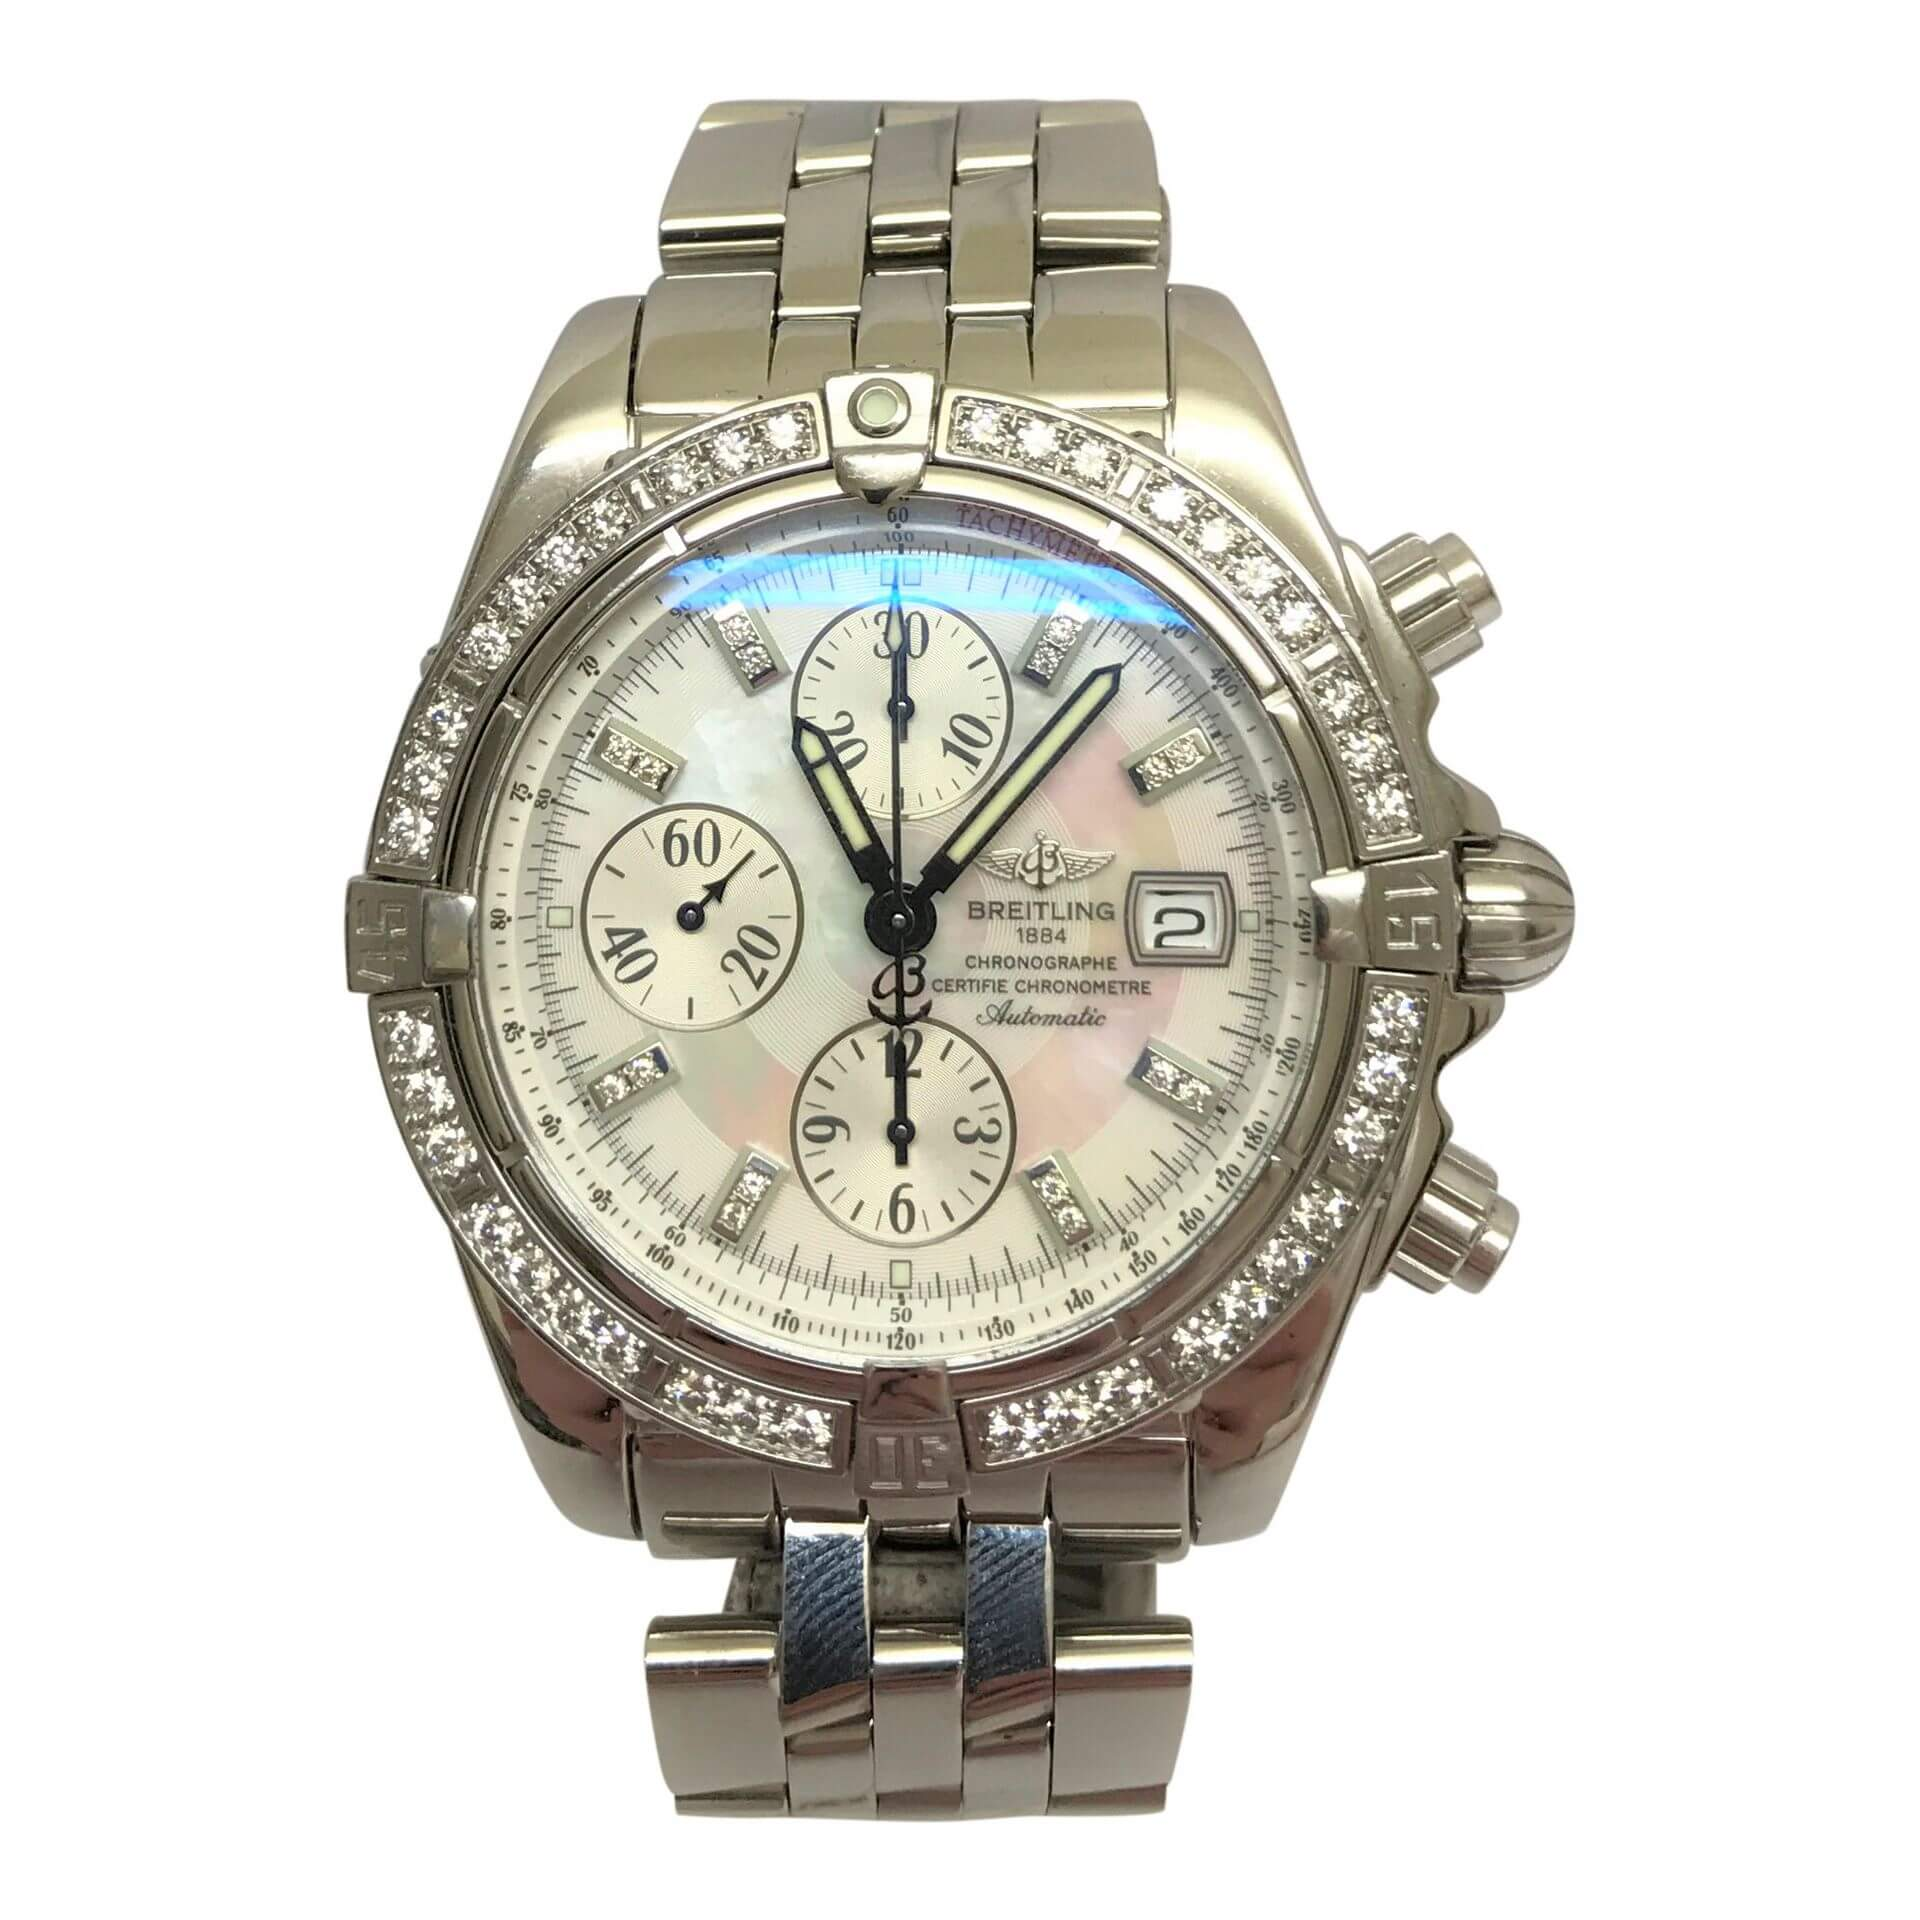 breitling chrongraphe large mens watch factory diamonds breitling chrongraphe large mens watch factory diamonds